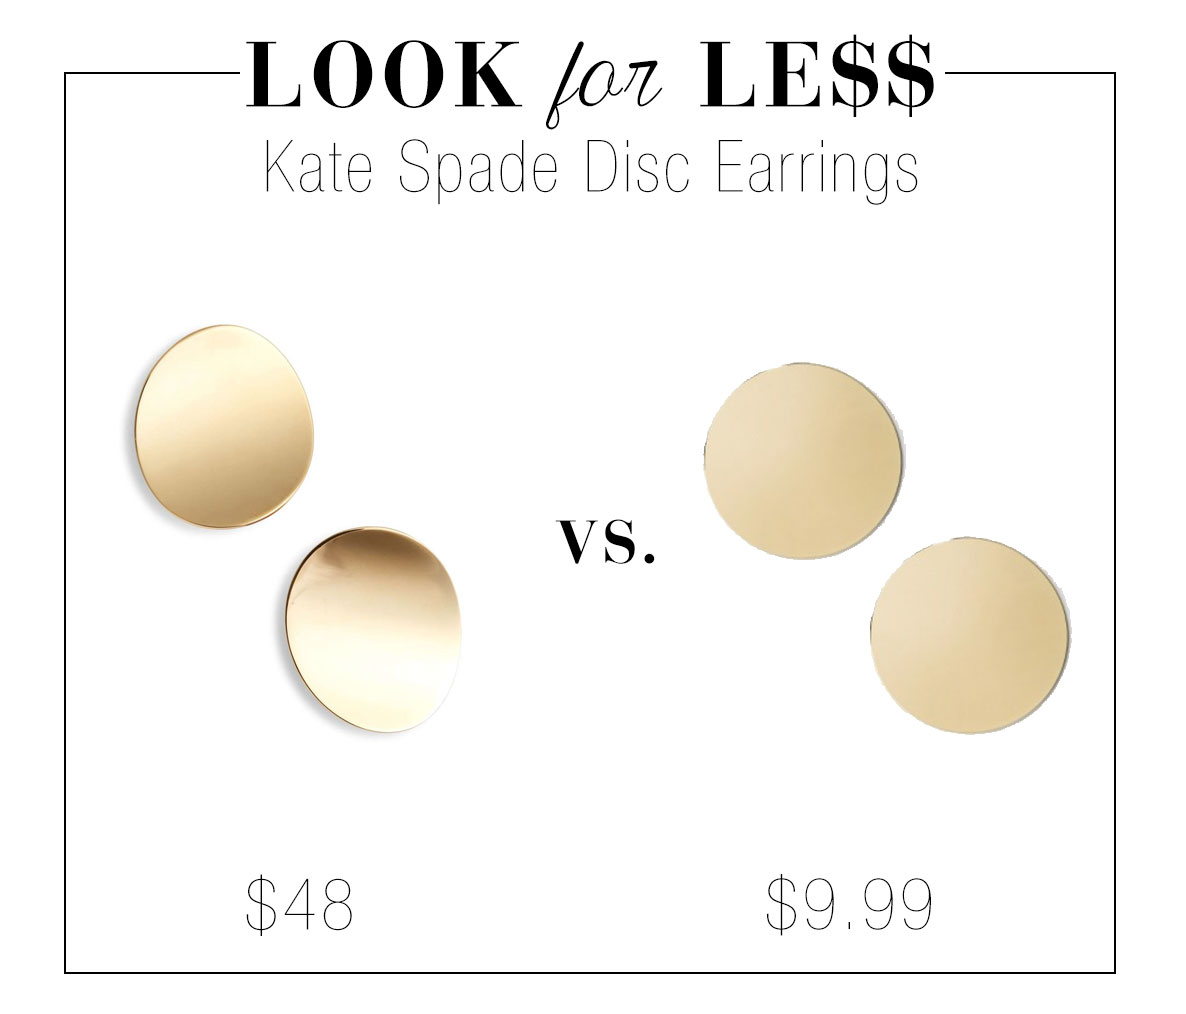 Kate Spade gold disc earrings look for less